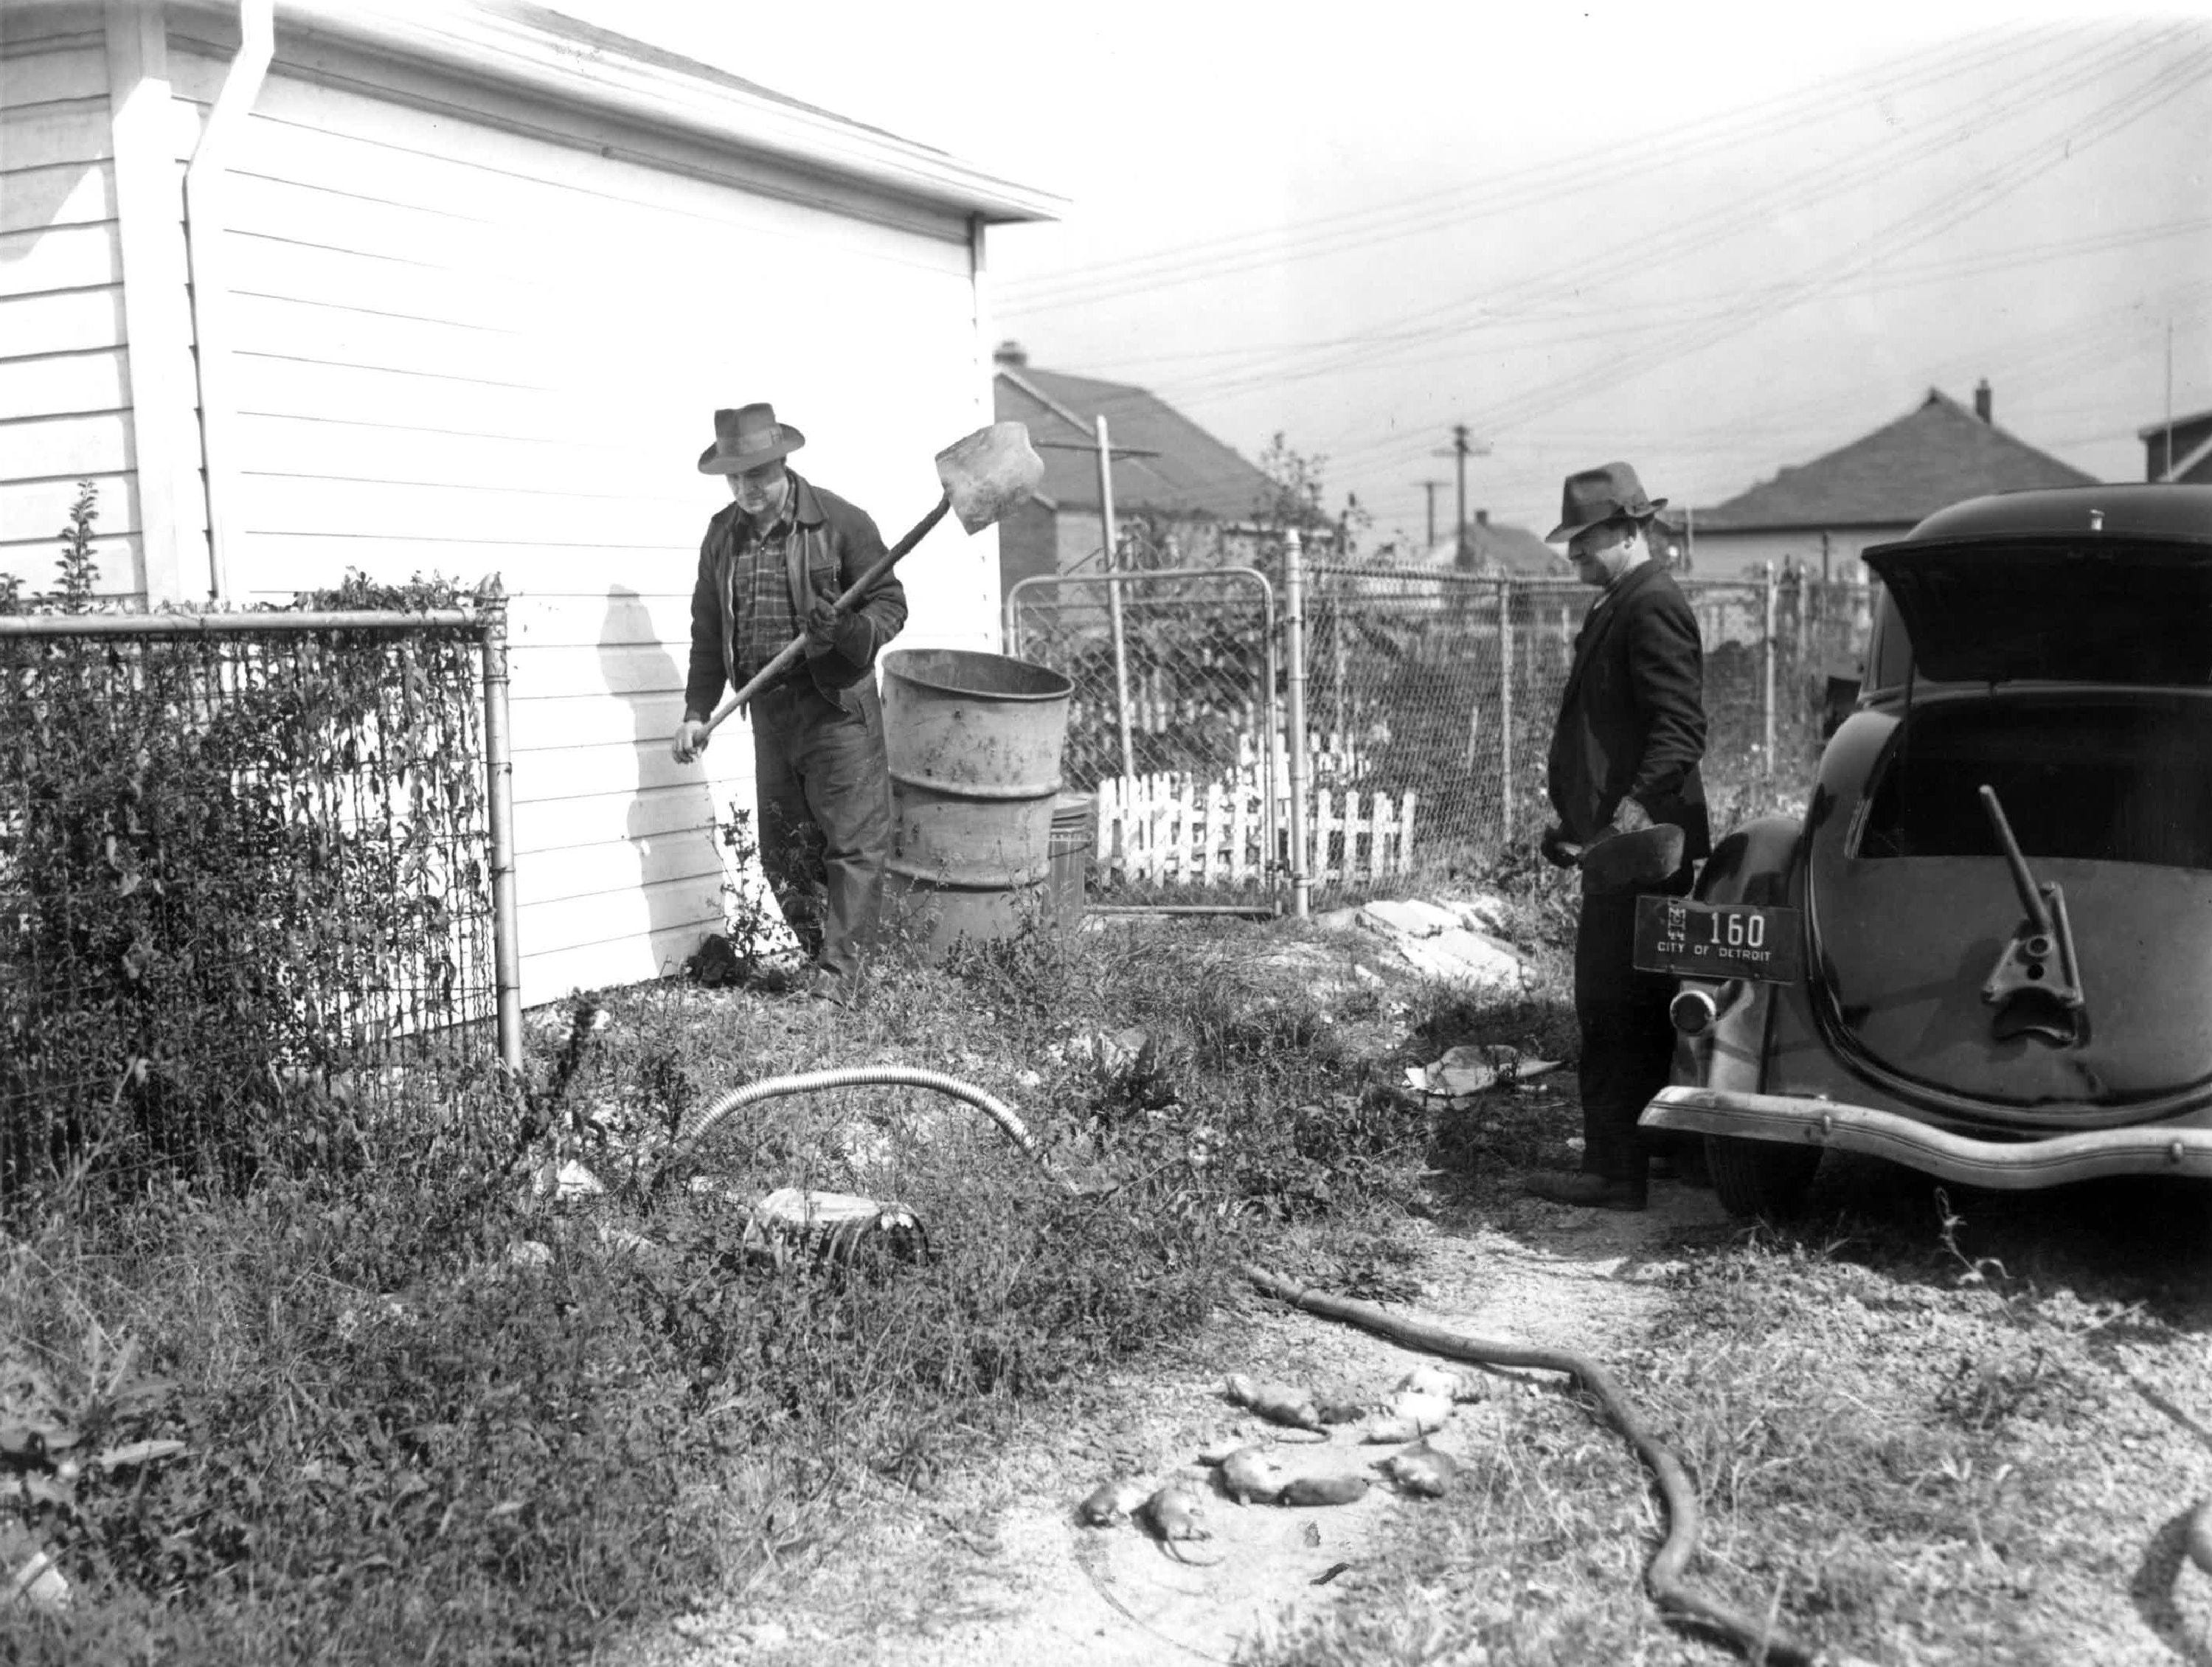 A rare glimpse at the rat extermination business in 1944: Joe Agneloo and 